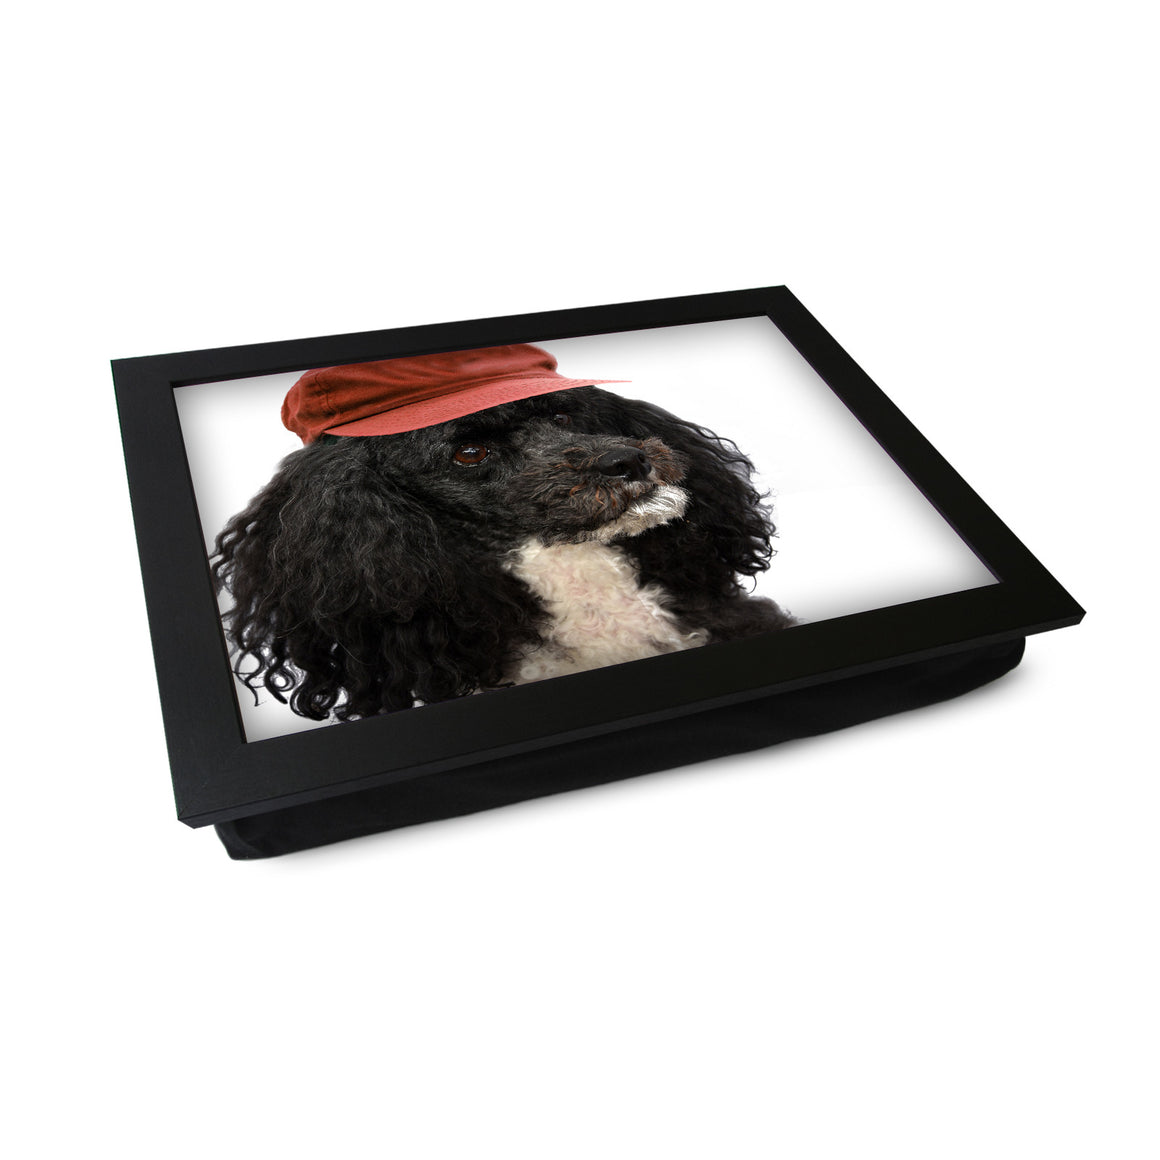 Harlequin Poodle Wearing a Hat Lap Tray - L0224